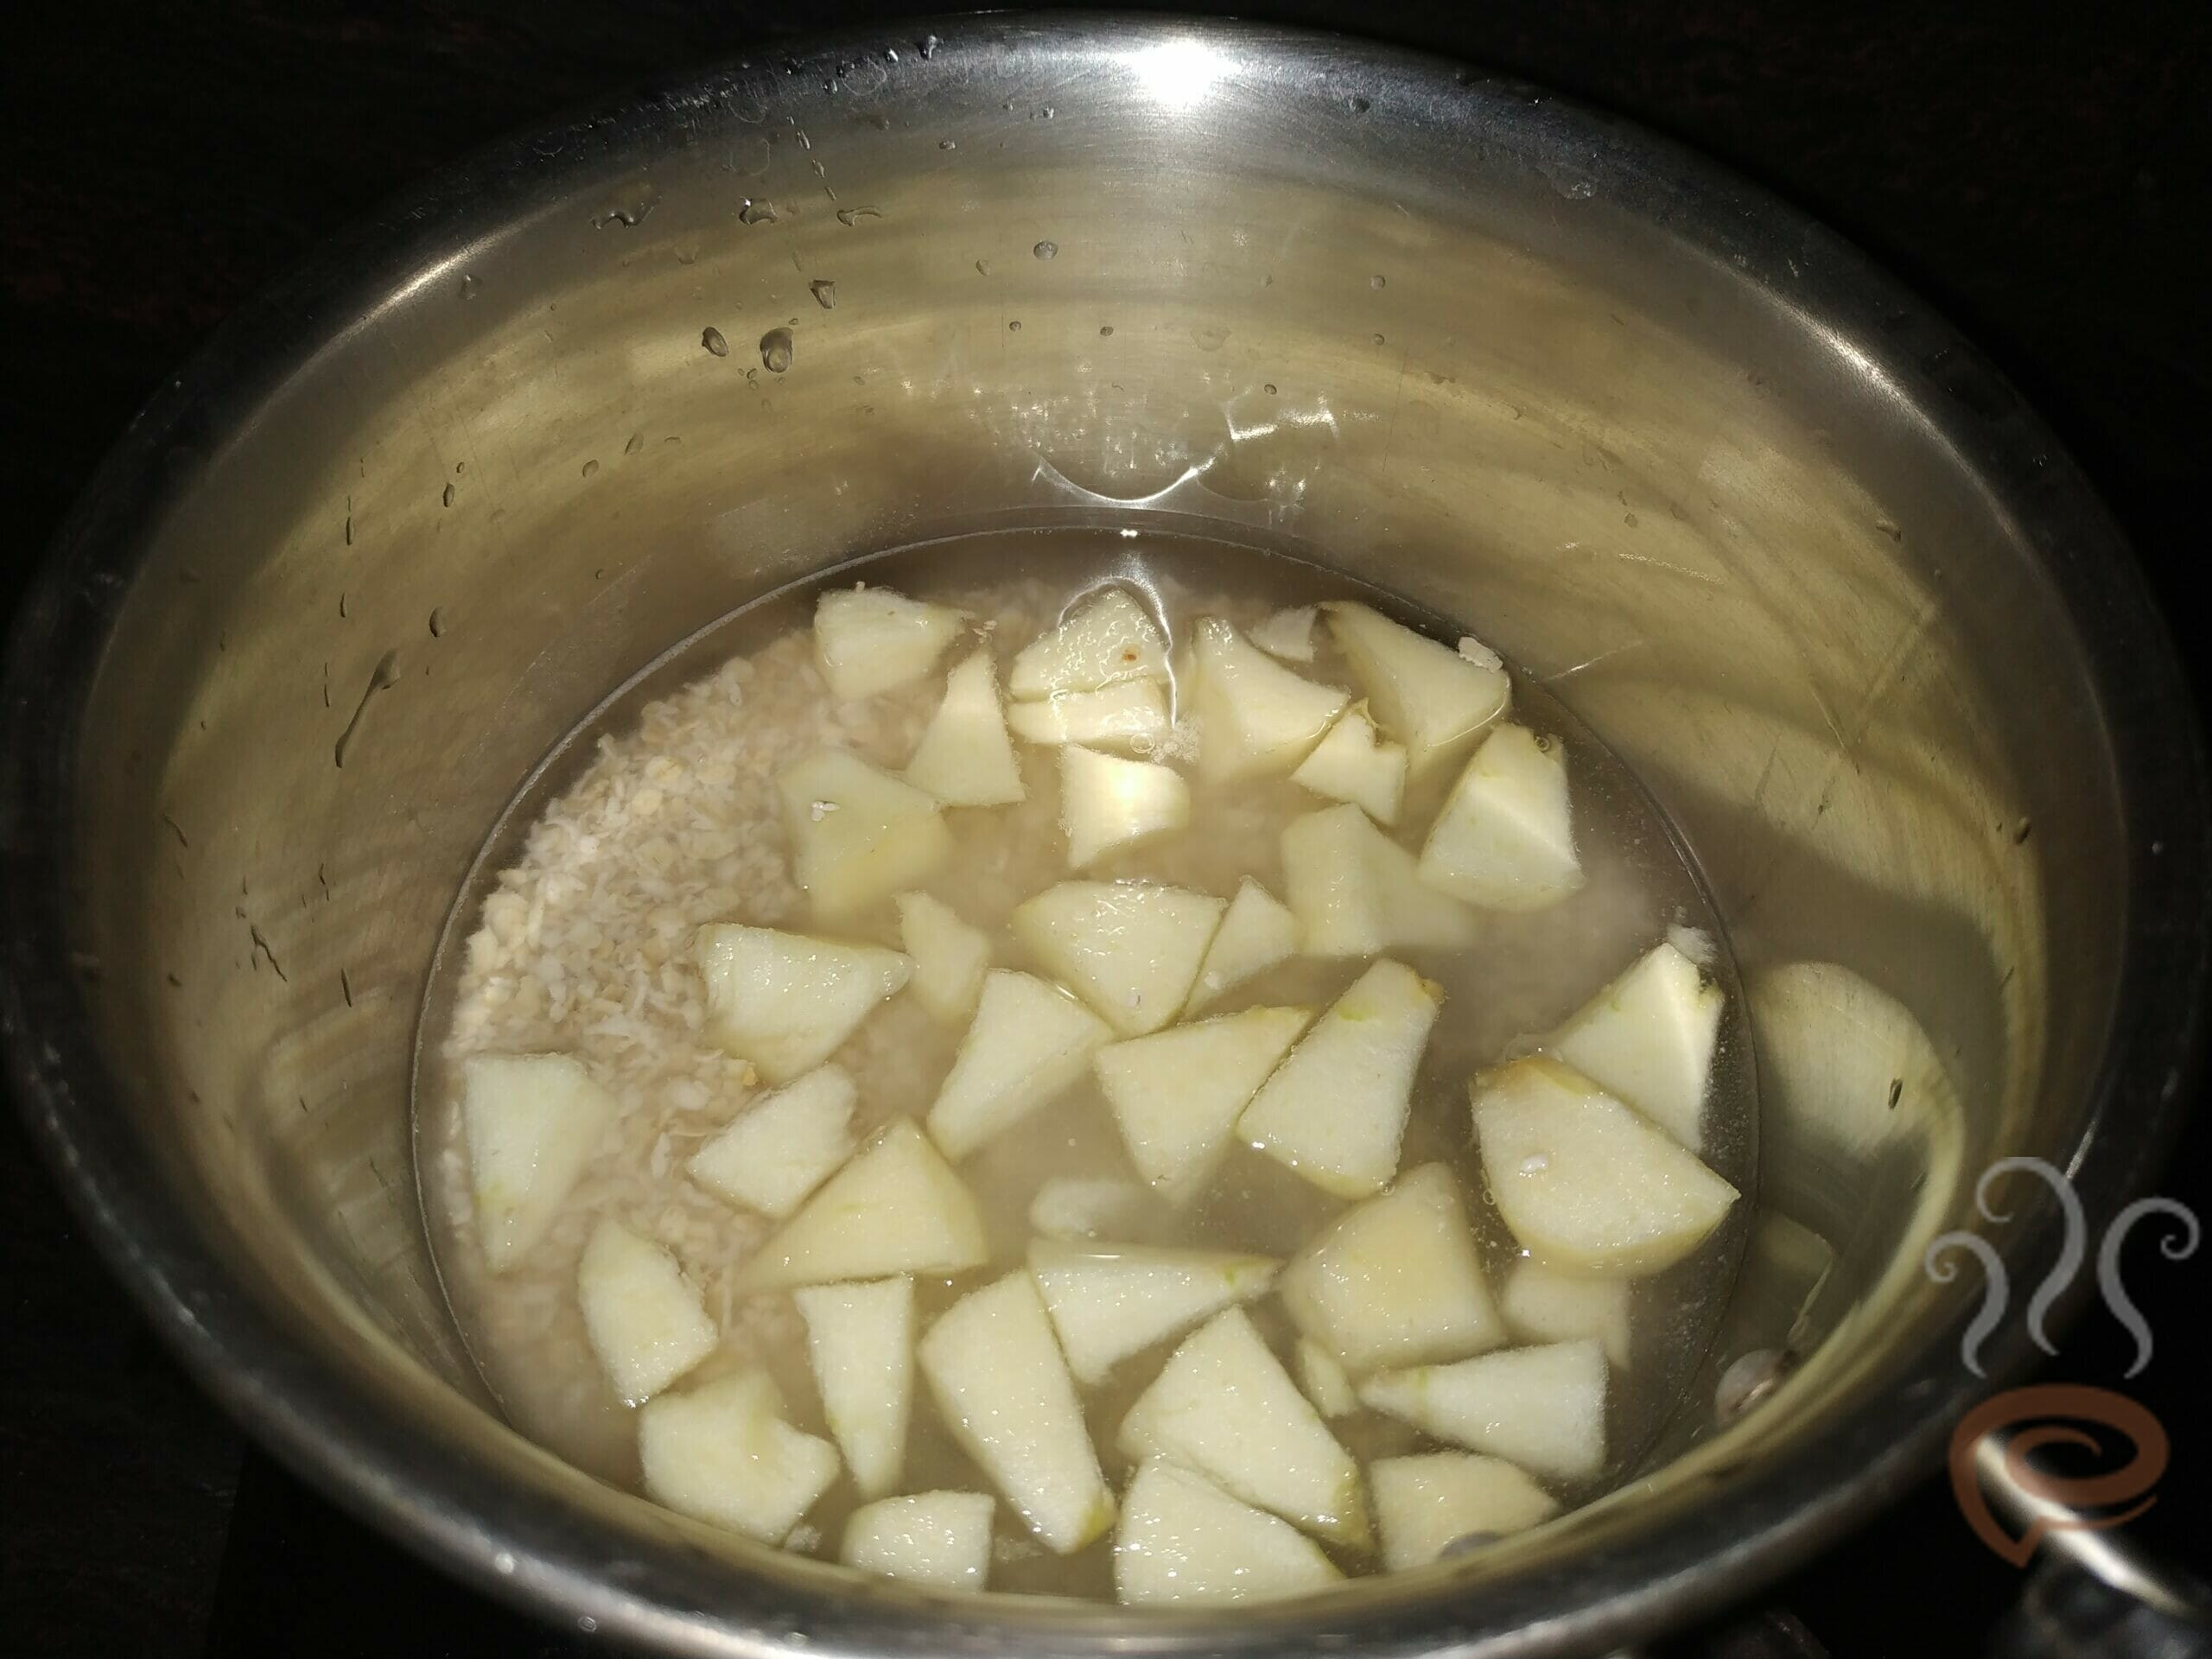 Oats Banana And Apple Porridge For Babies And Toddlers – pachakam.com